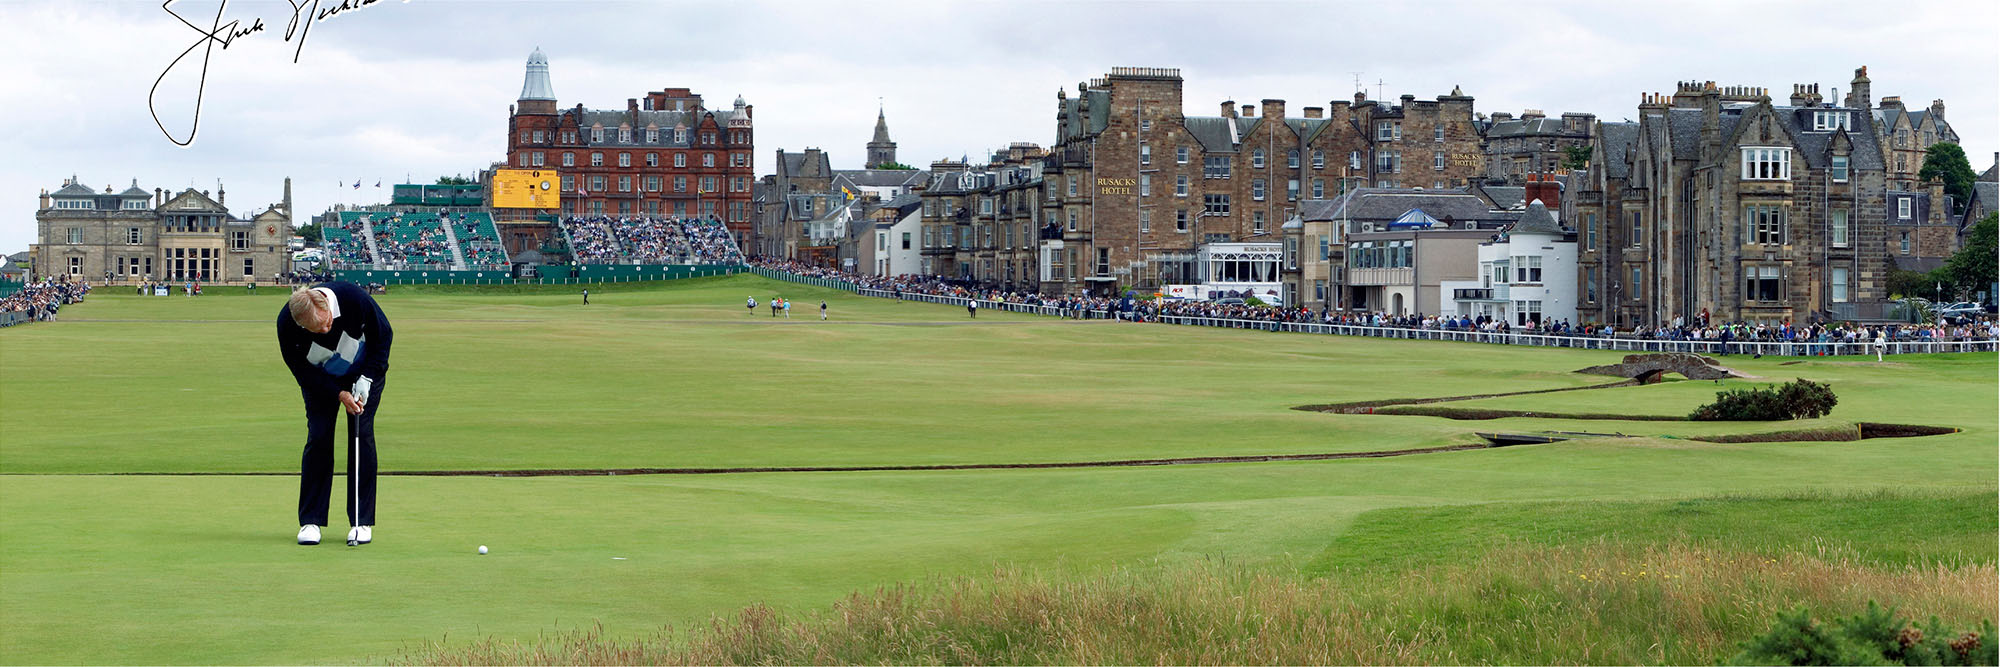 Golf Course Image - Jack Nicklaus British Open No 1